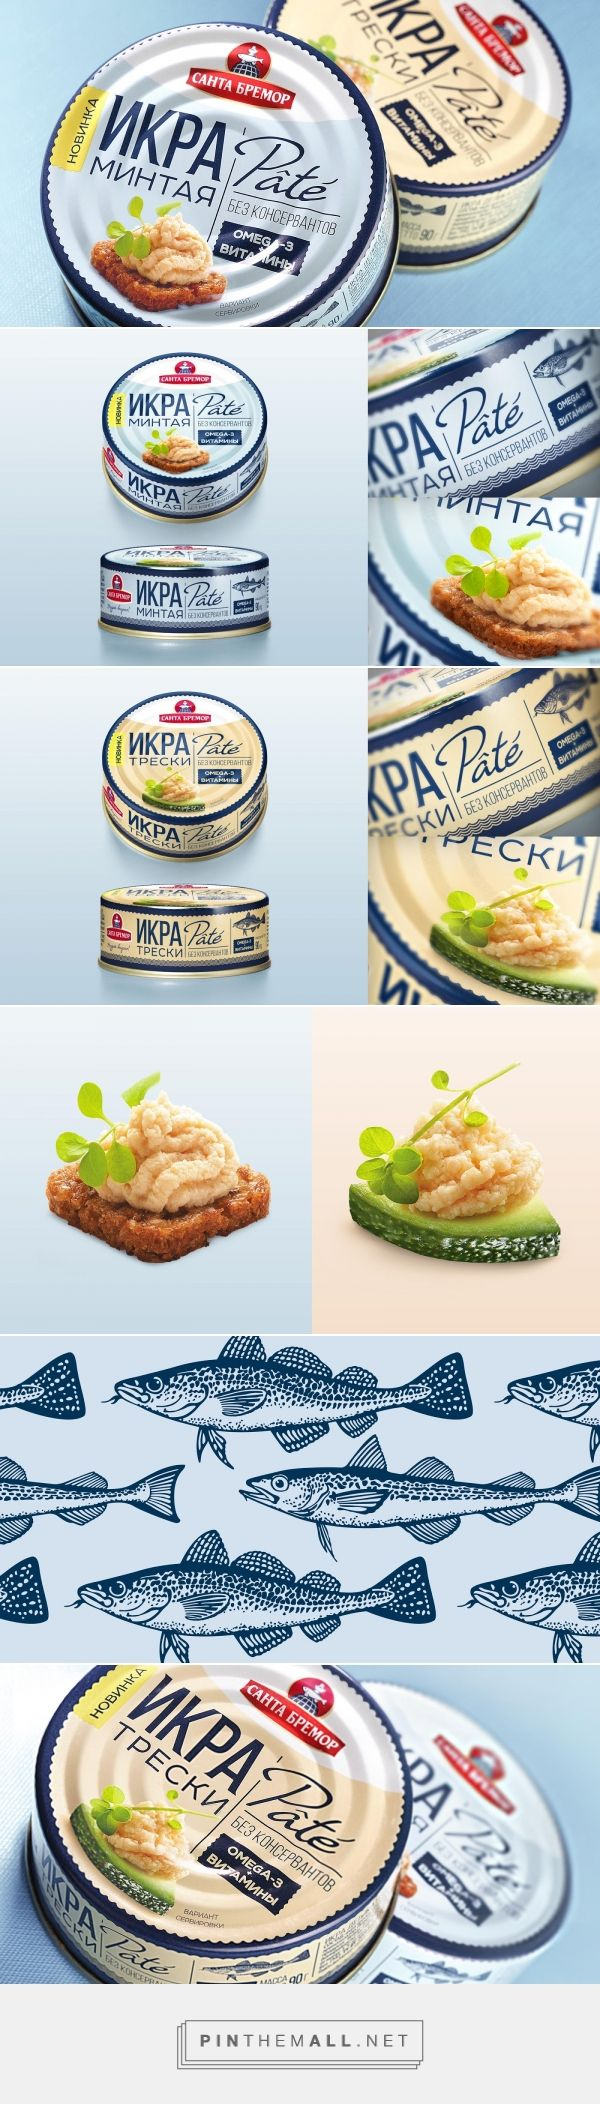 Pâté Caviar - Packaging of the World - Creative Package Design Gallery - http://www.packagingoftheworld.com/2017/06/spoon-in-hand.html